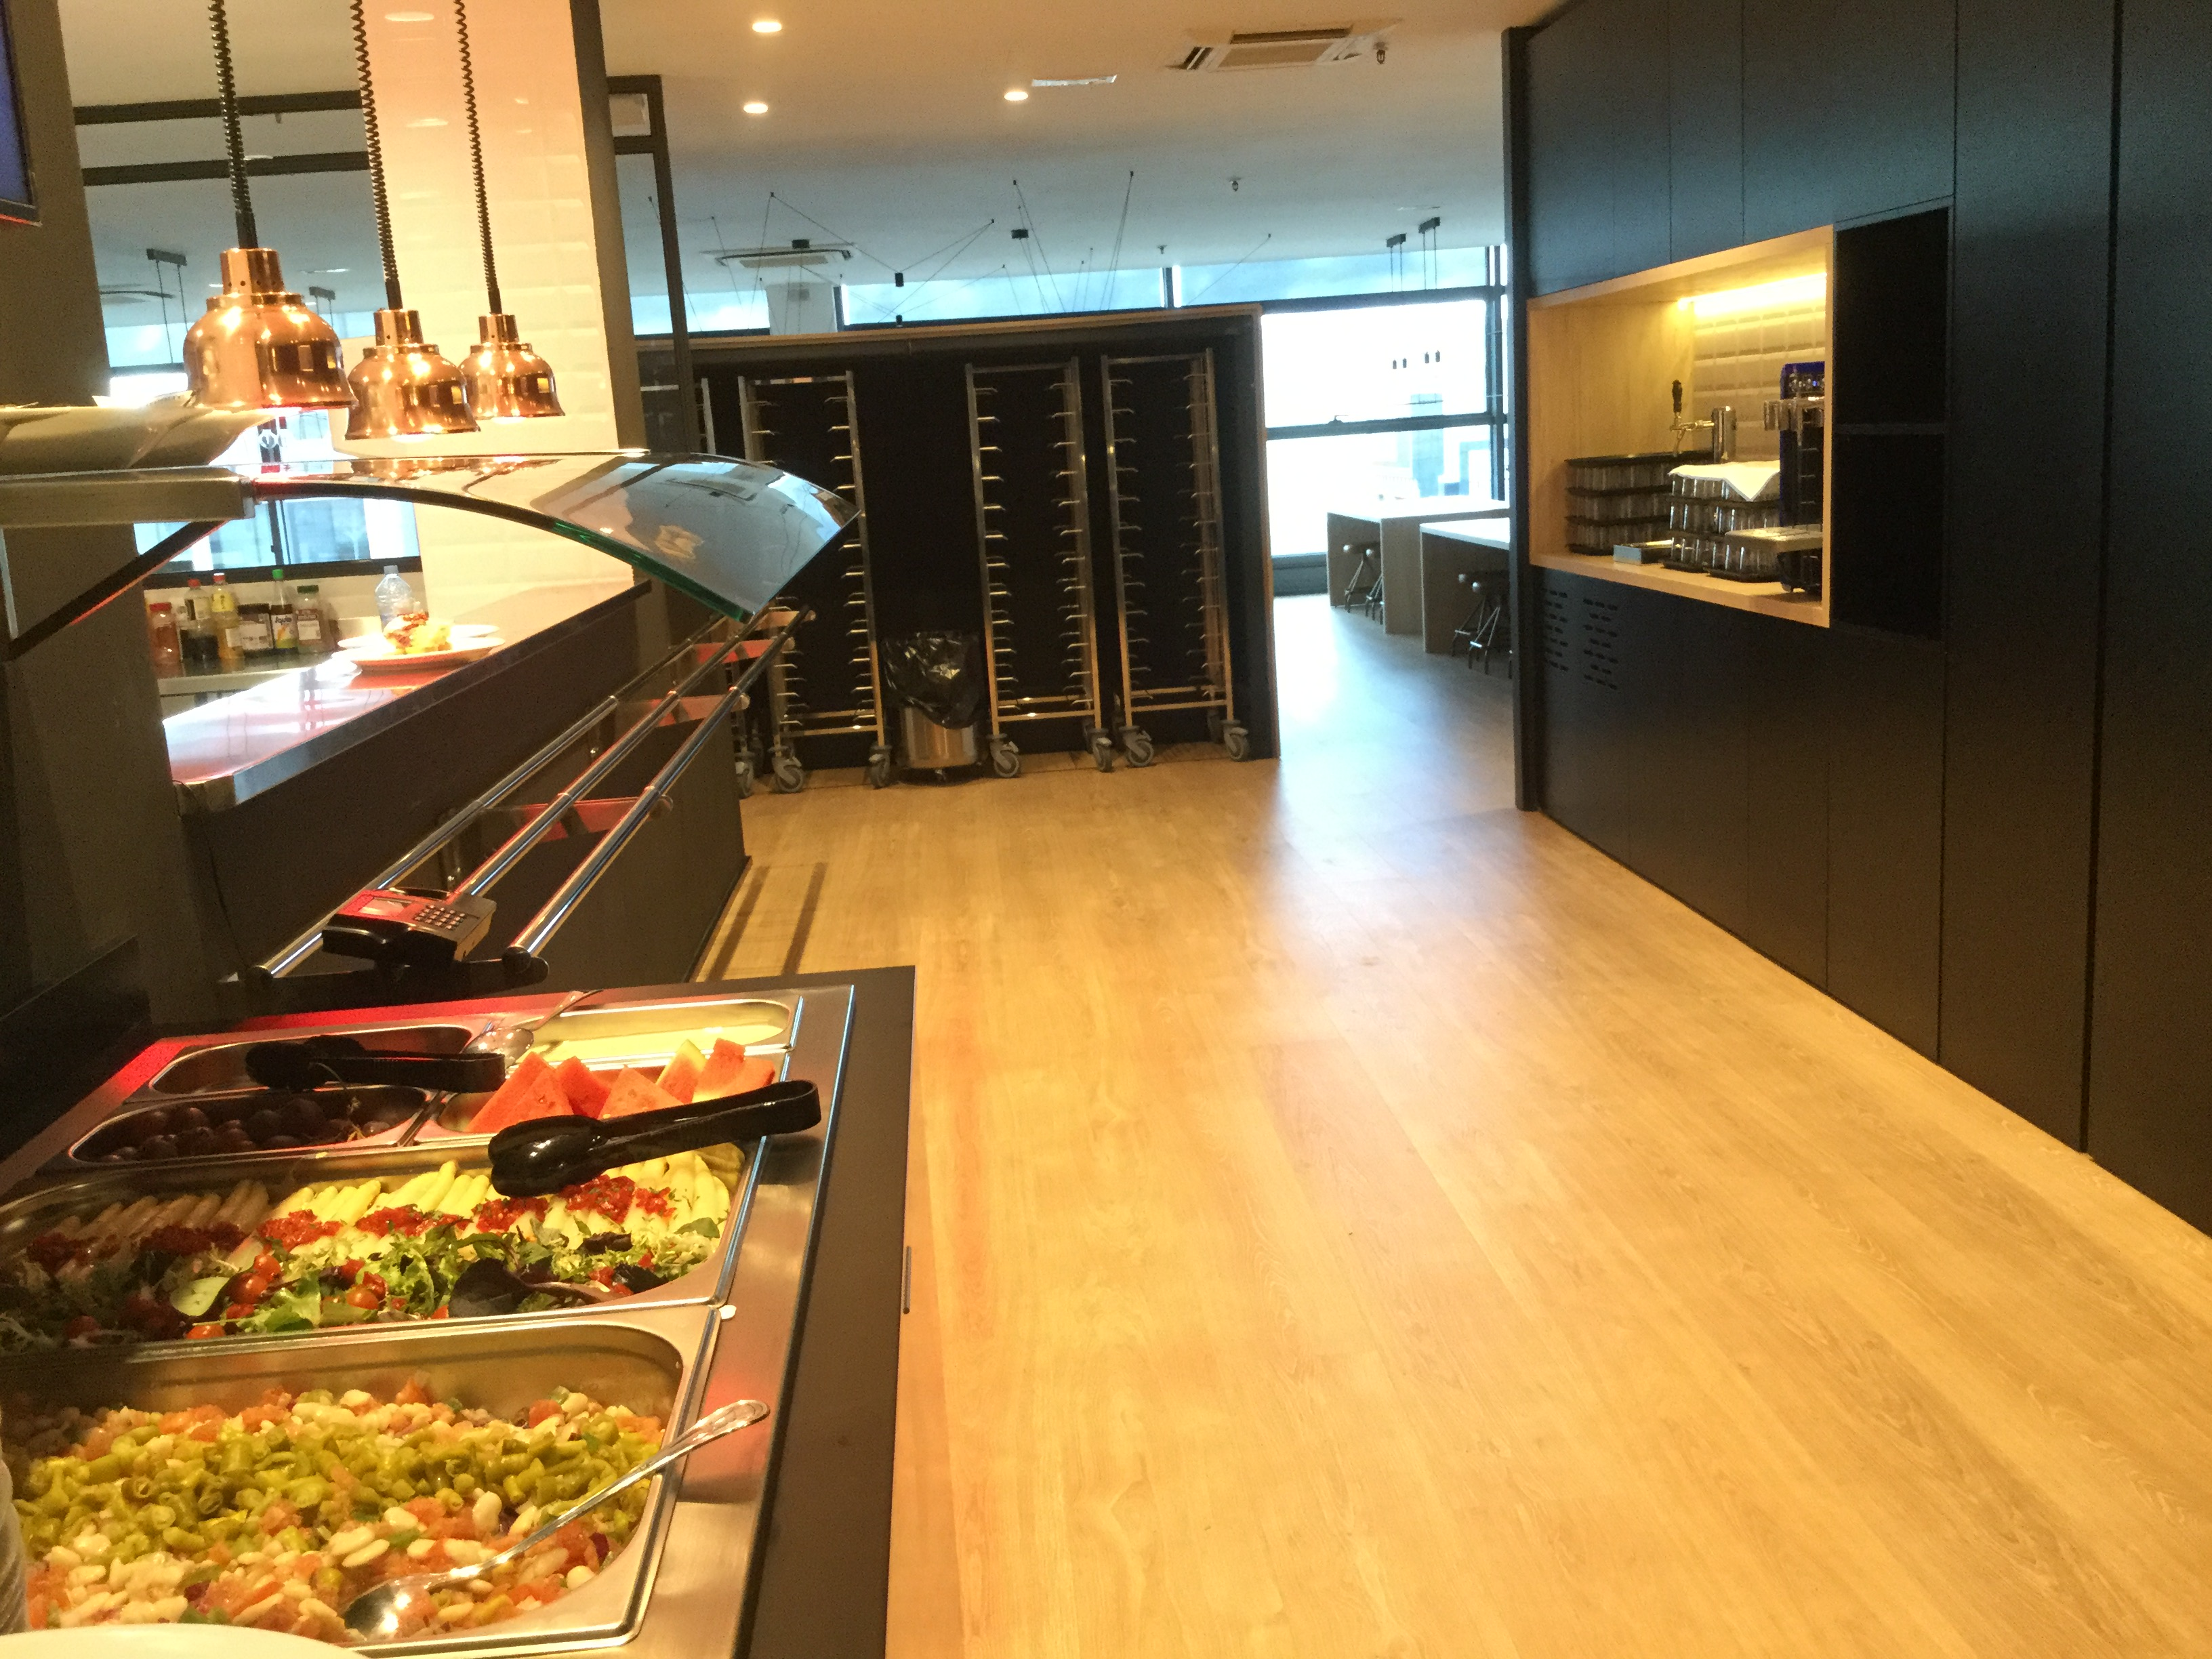 We open kitchen and buffet restaurant at the Palma headquarters